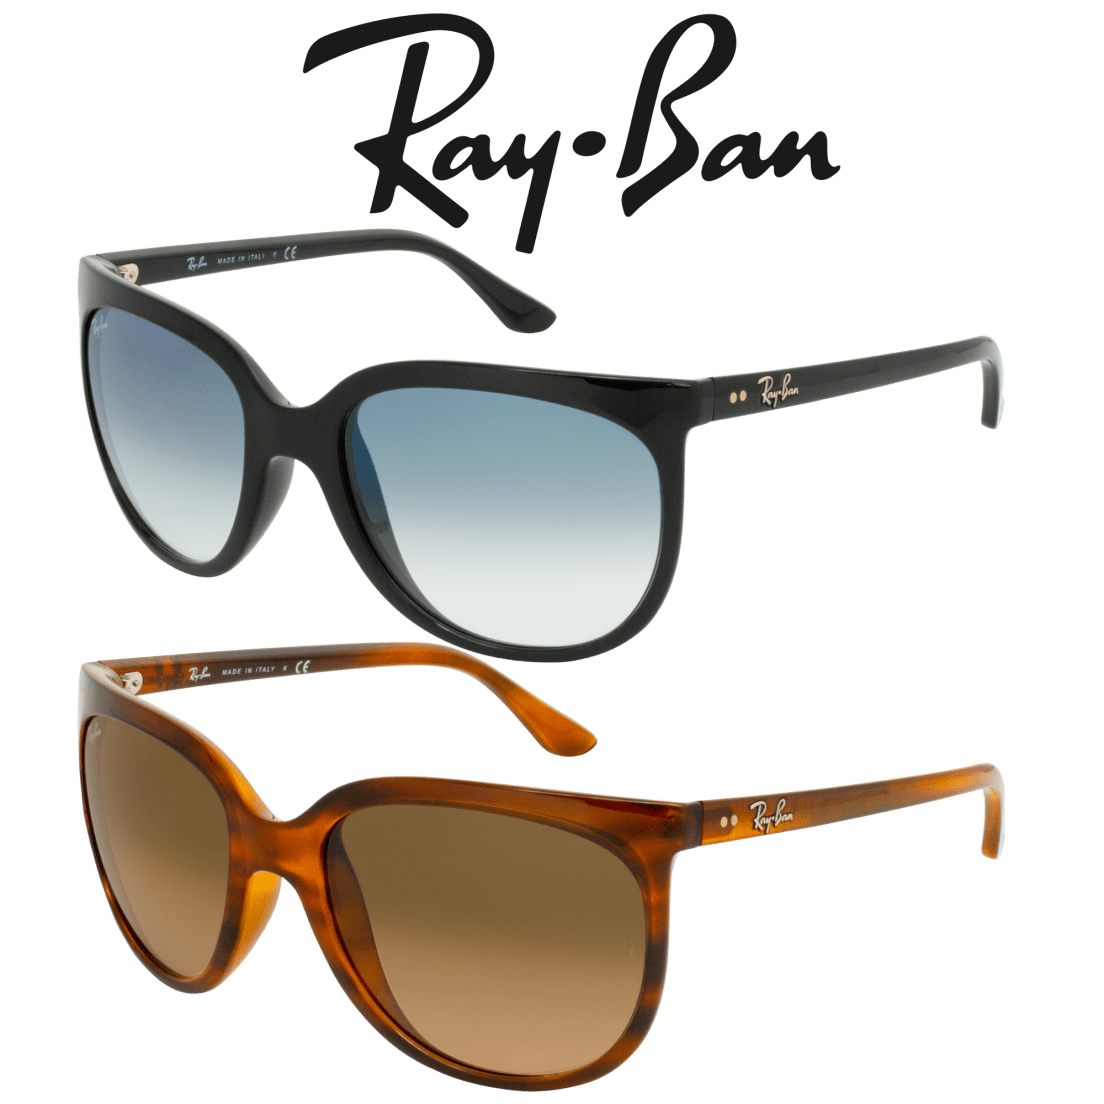 83defa16235d Ray-Ban CATS 1000 RB4126 Sunglasses